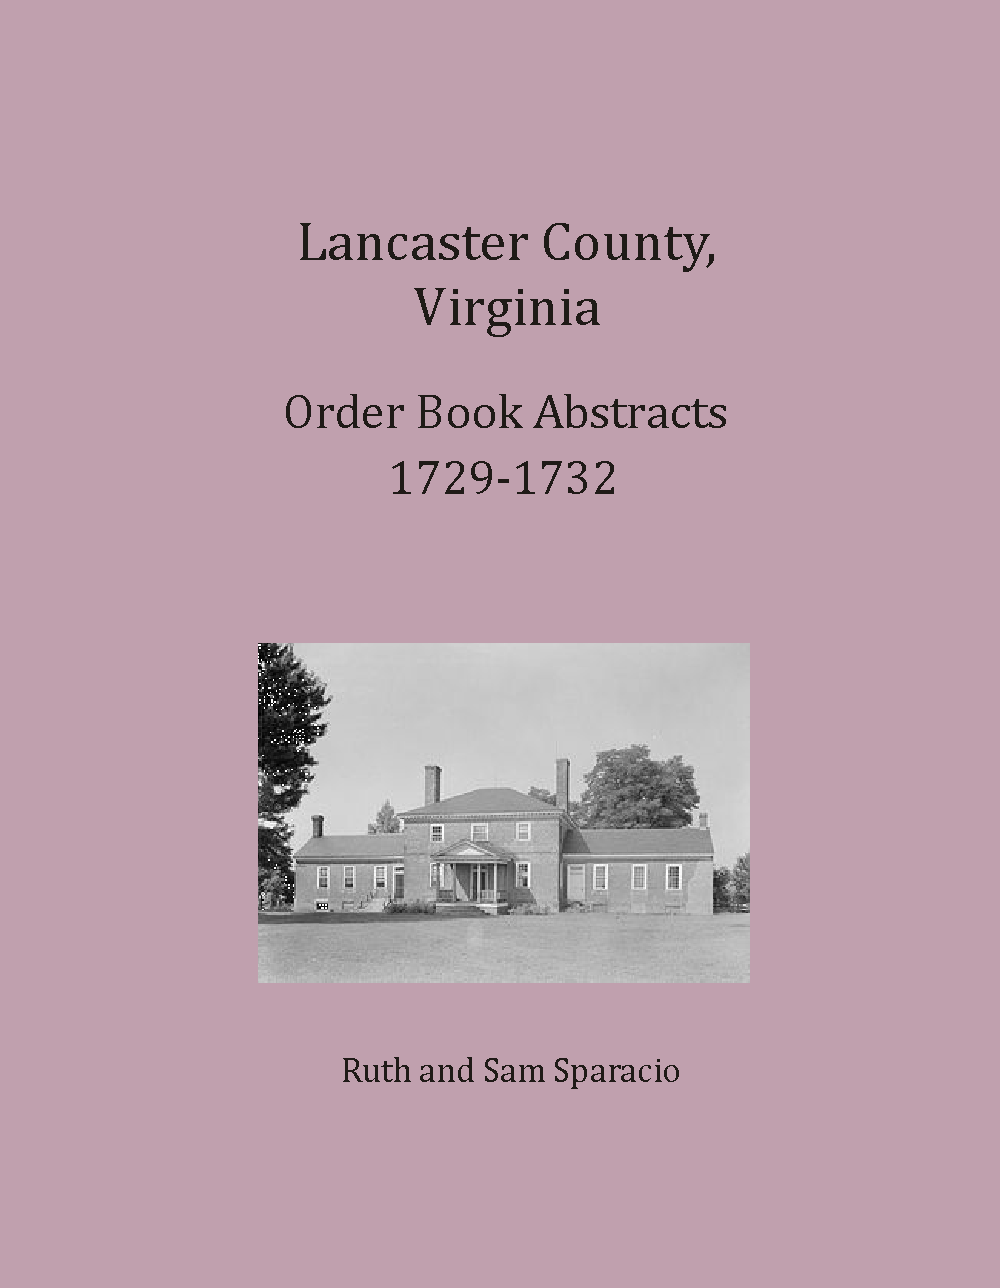 Lancaster County, Virginia Order Book Abstracts, 1729-1732